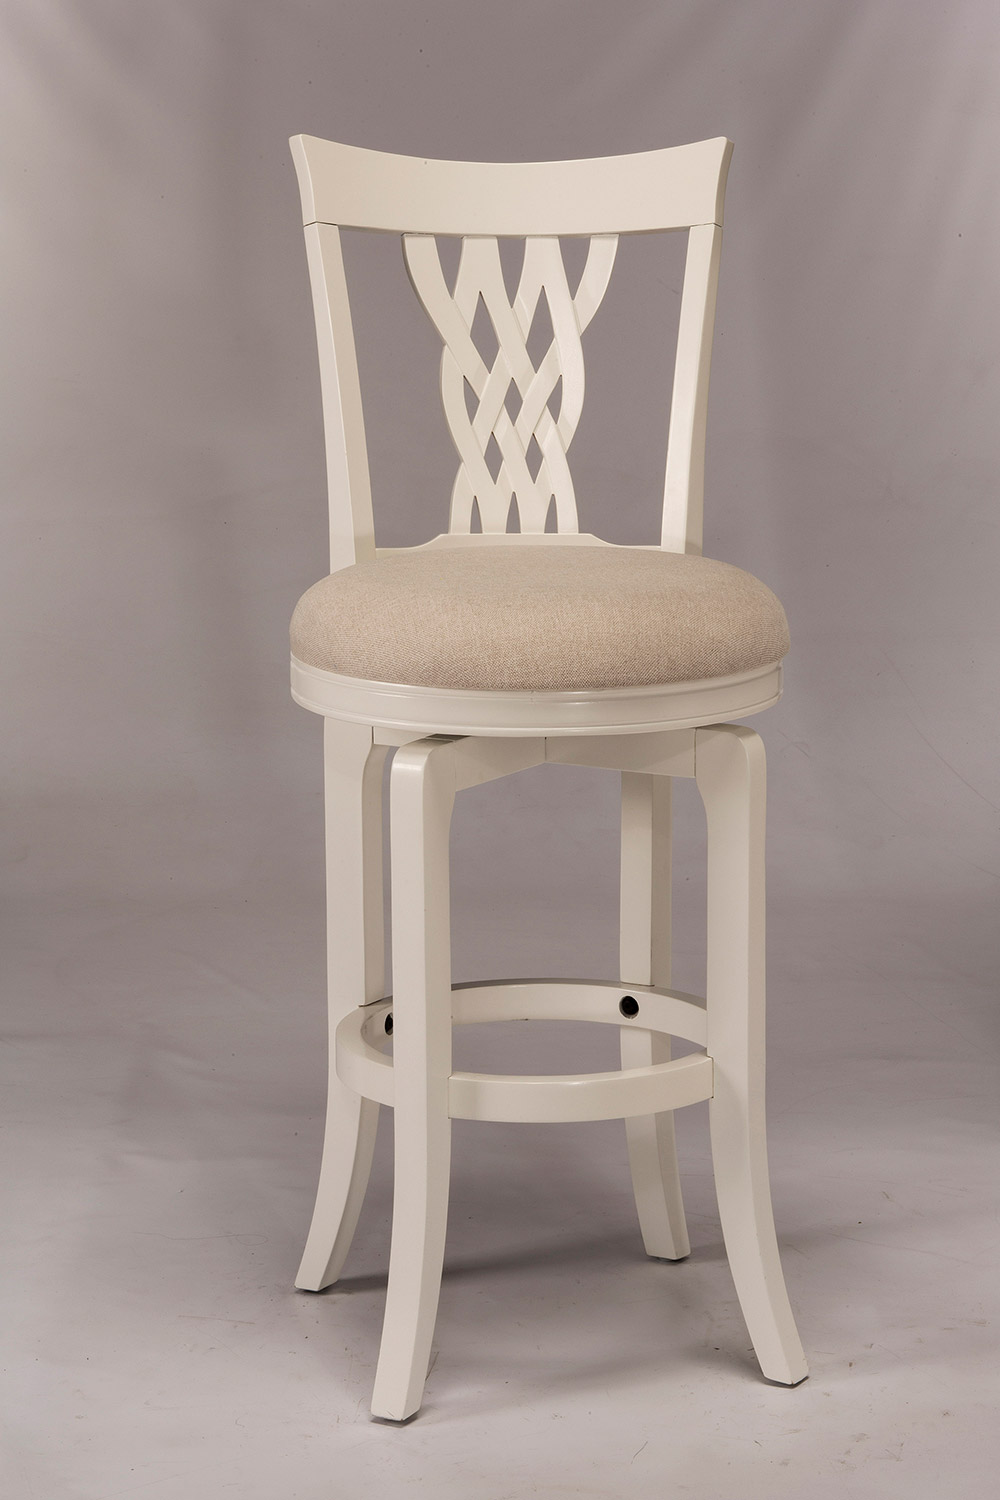 Hillsdale Embassy Swivel Counter Stool White Hd 5753 826